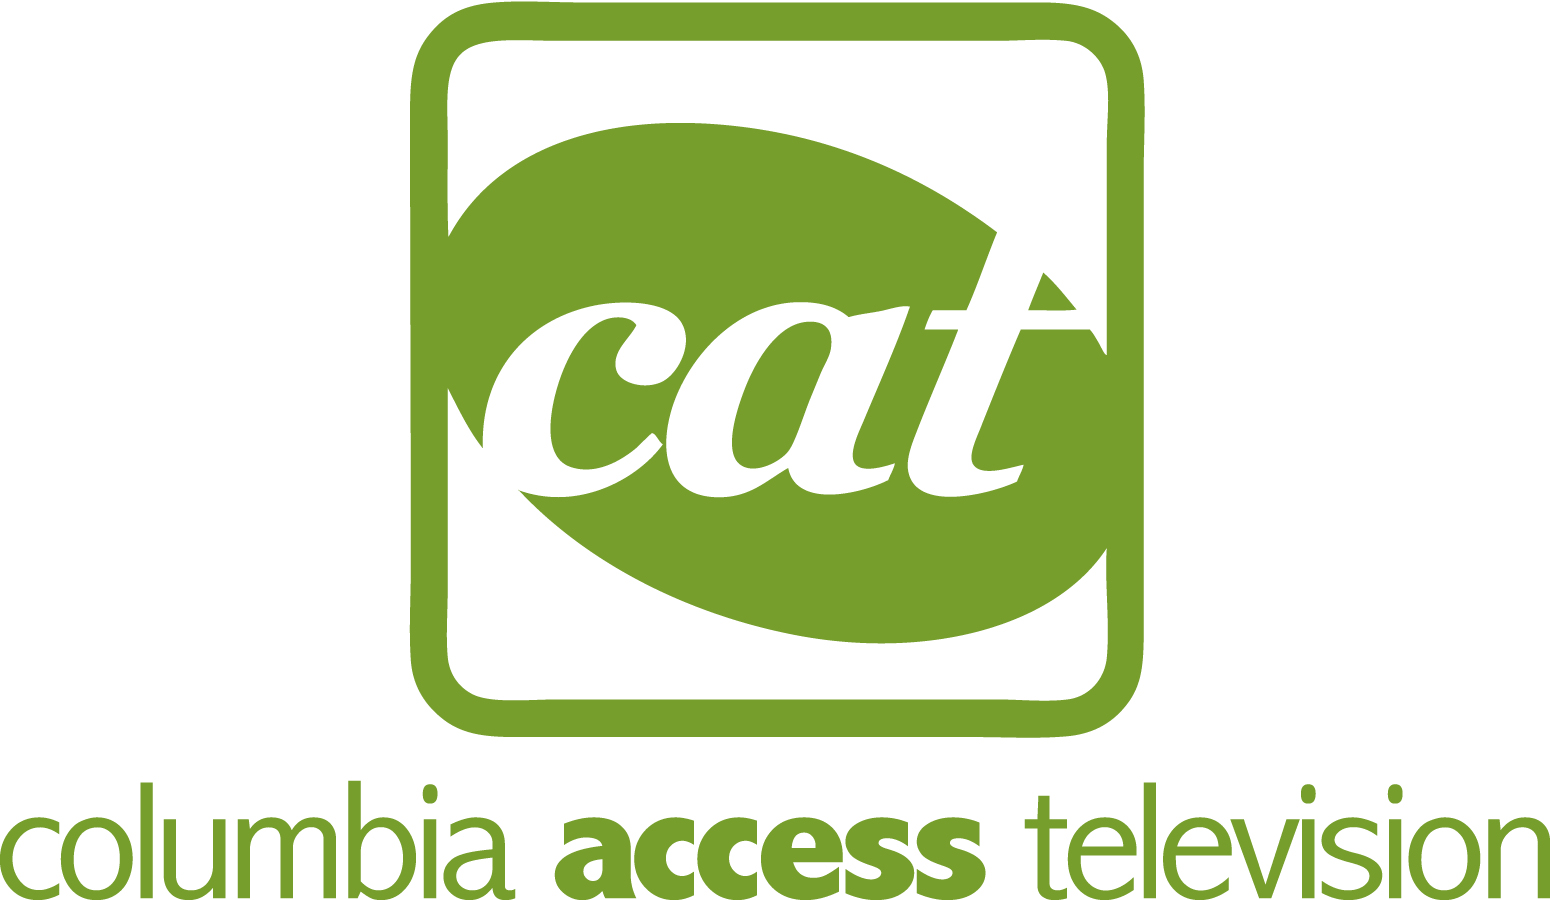 CAT Full Name Logo Green